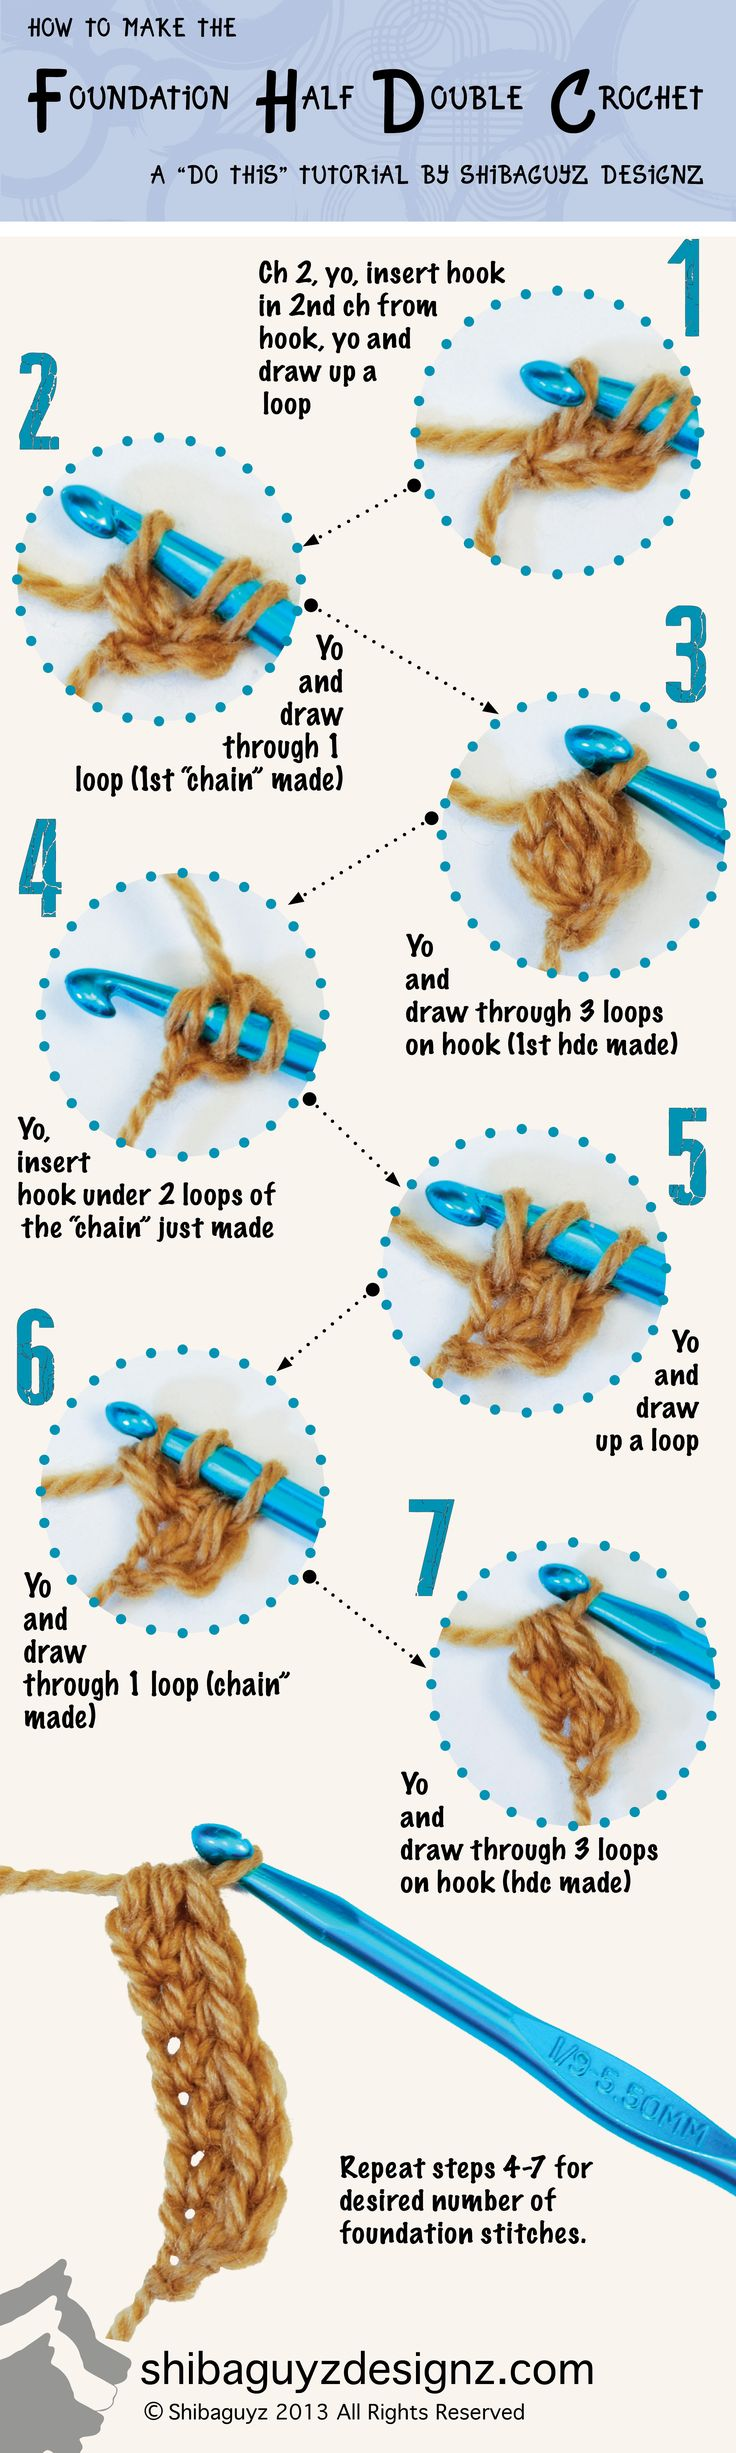 Technique :: Foundation Half Double Crochet stitch  . . .  ღTrish W ~ http://www.pinterest.com/trishw/  . . .